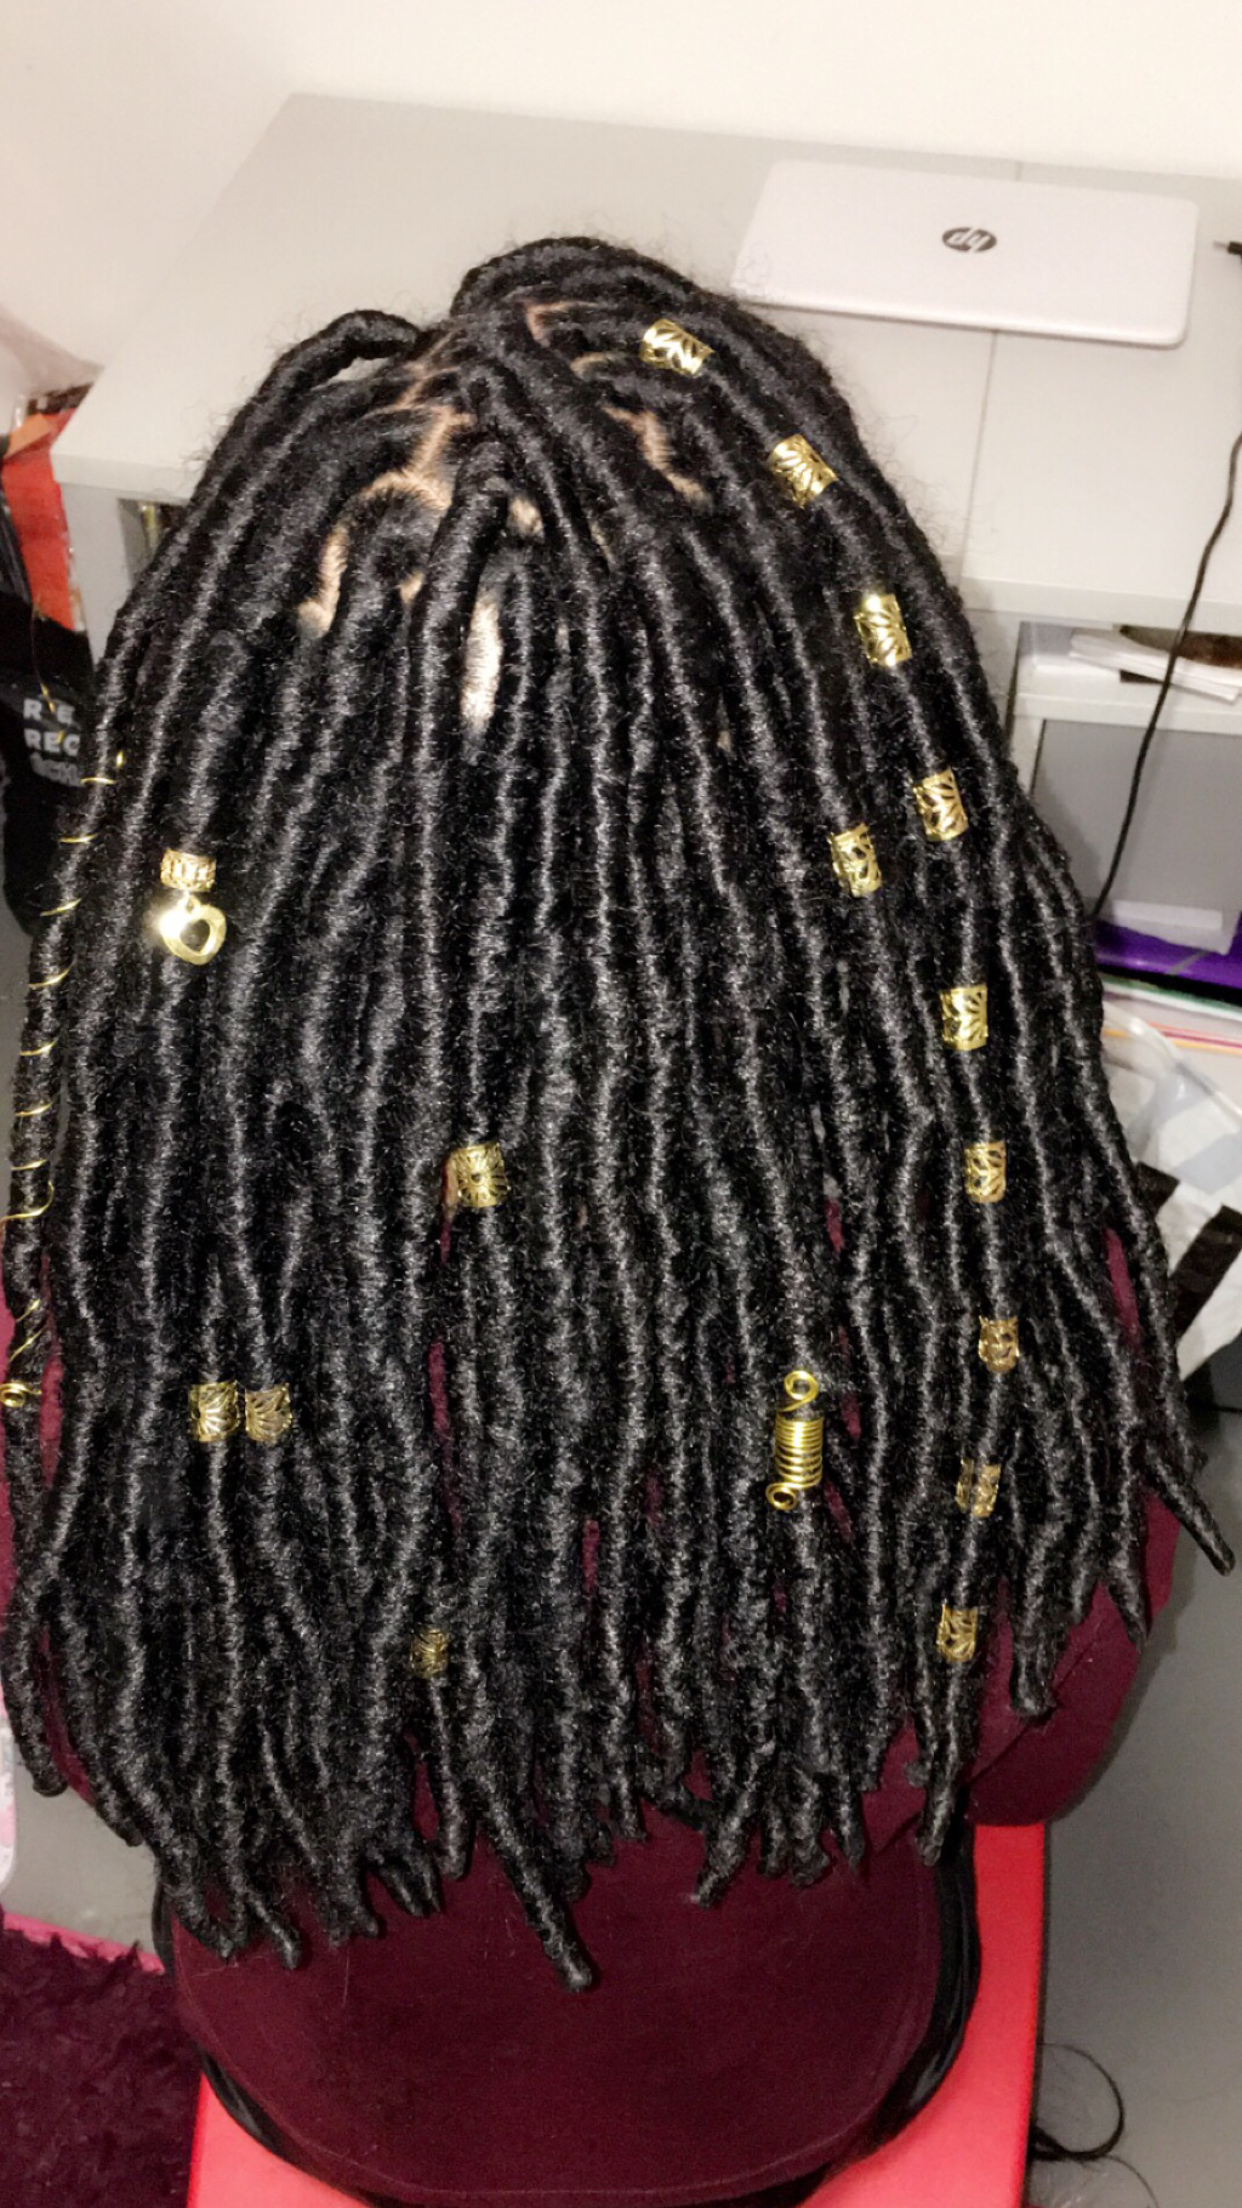 salon de coiffure afro tresse tresses box braids crochet braids vanilles tissages paris 75 77 78 91 92 93 94 95 QBKYVBKJ